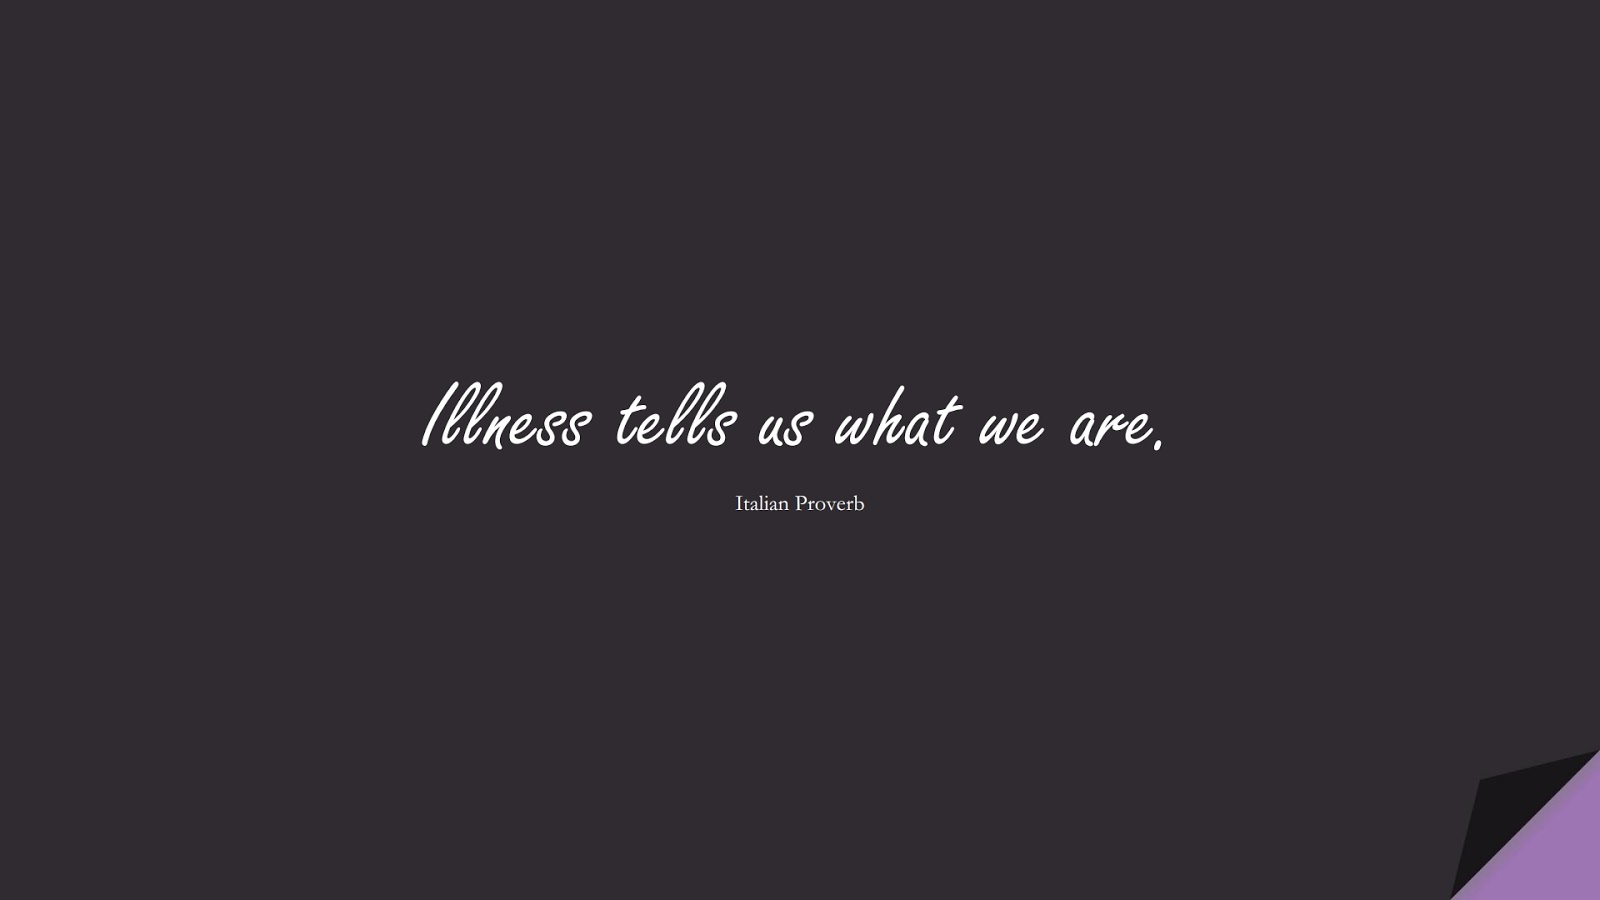 Illness tells us what we are. (Italian Proverb);  #HealthQuotes